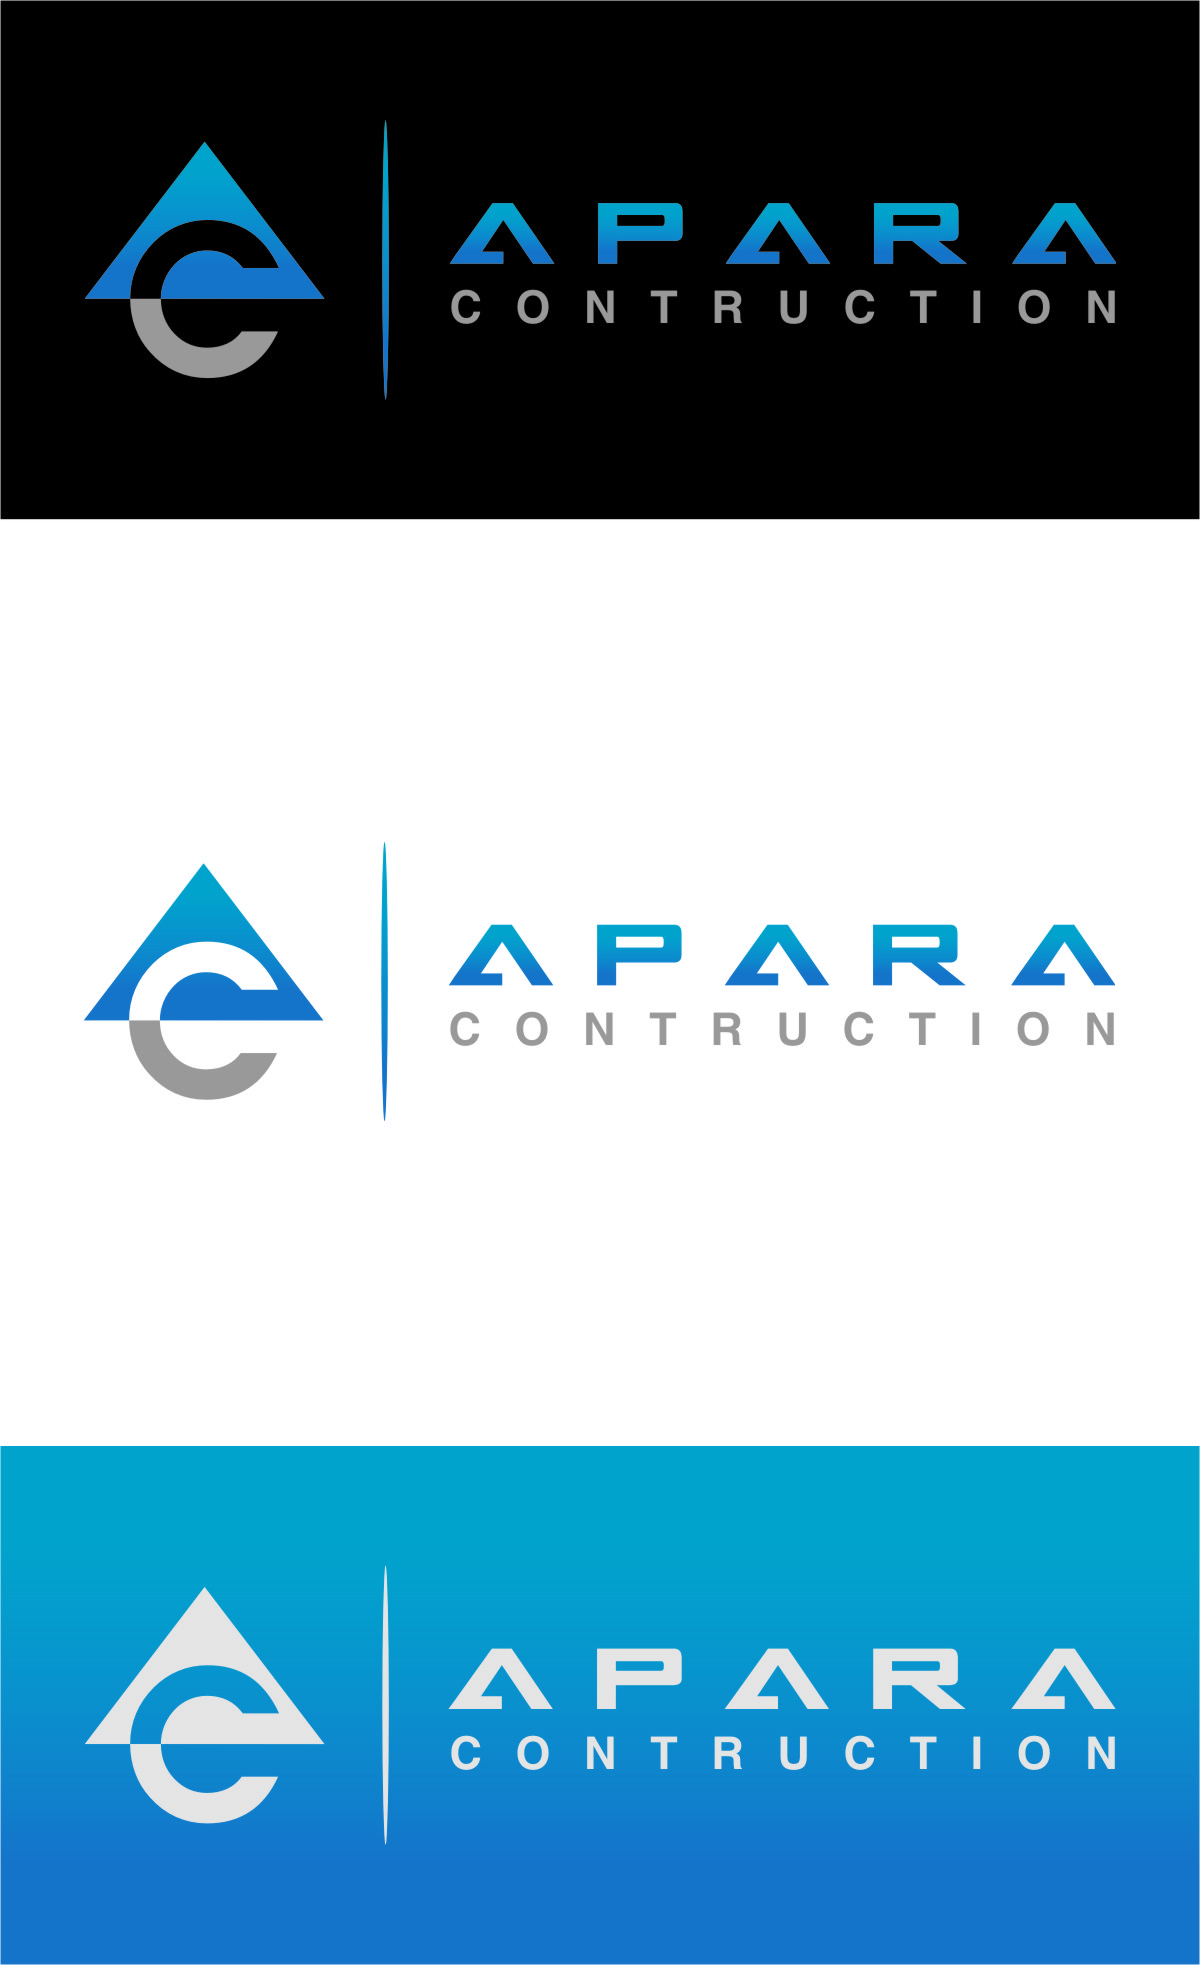 Logo Design by Ngepet_art - Entry No. 29 in the Logo Design Contest Apara Construction Logo Design.